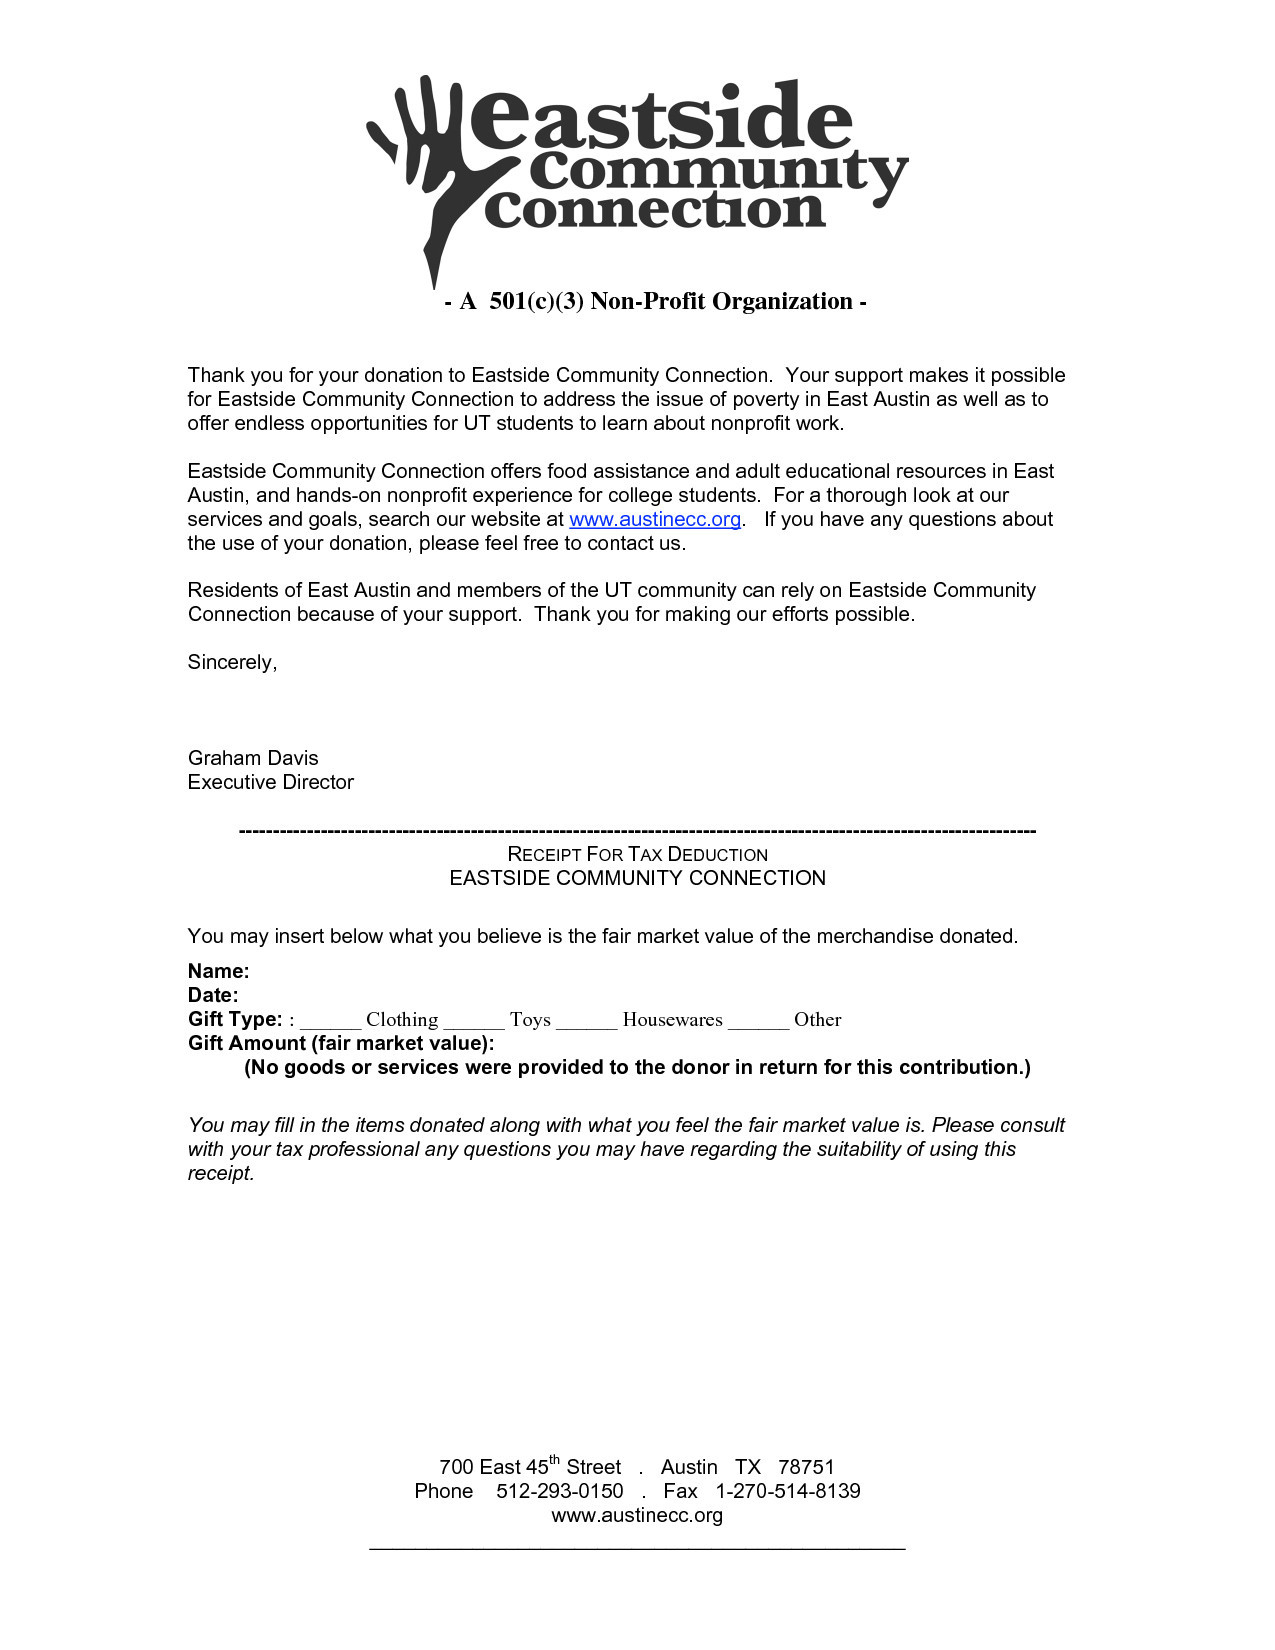 Non Profit Donation Letter Template - Exceptional Tax Donation Letter Template